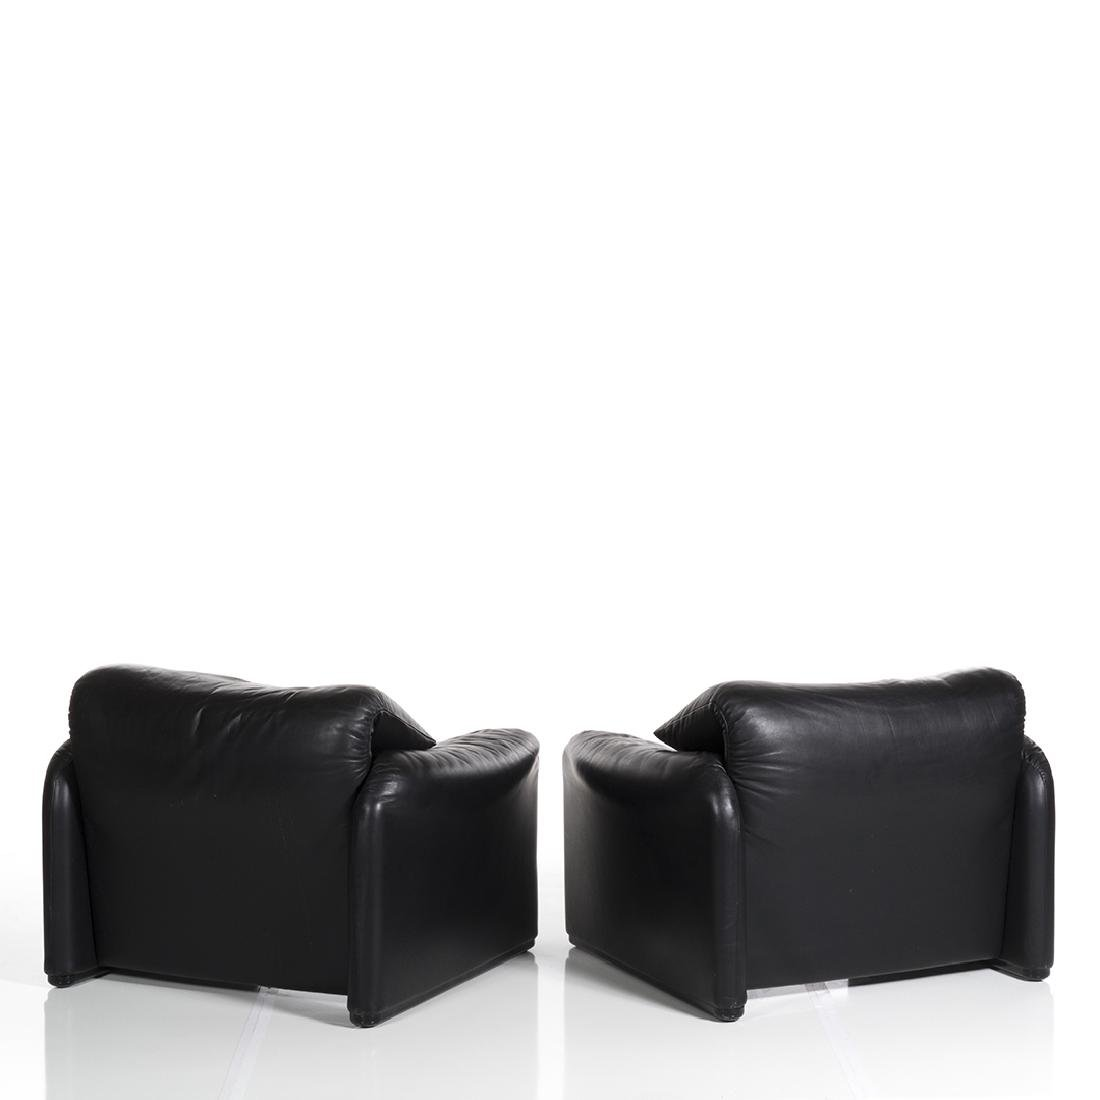 Vico Magistretti Maralunga Chairs and Ottoman (3) - 5